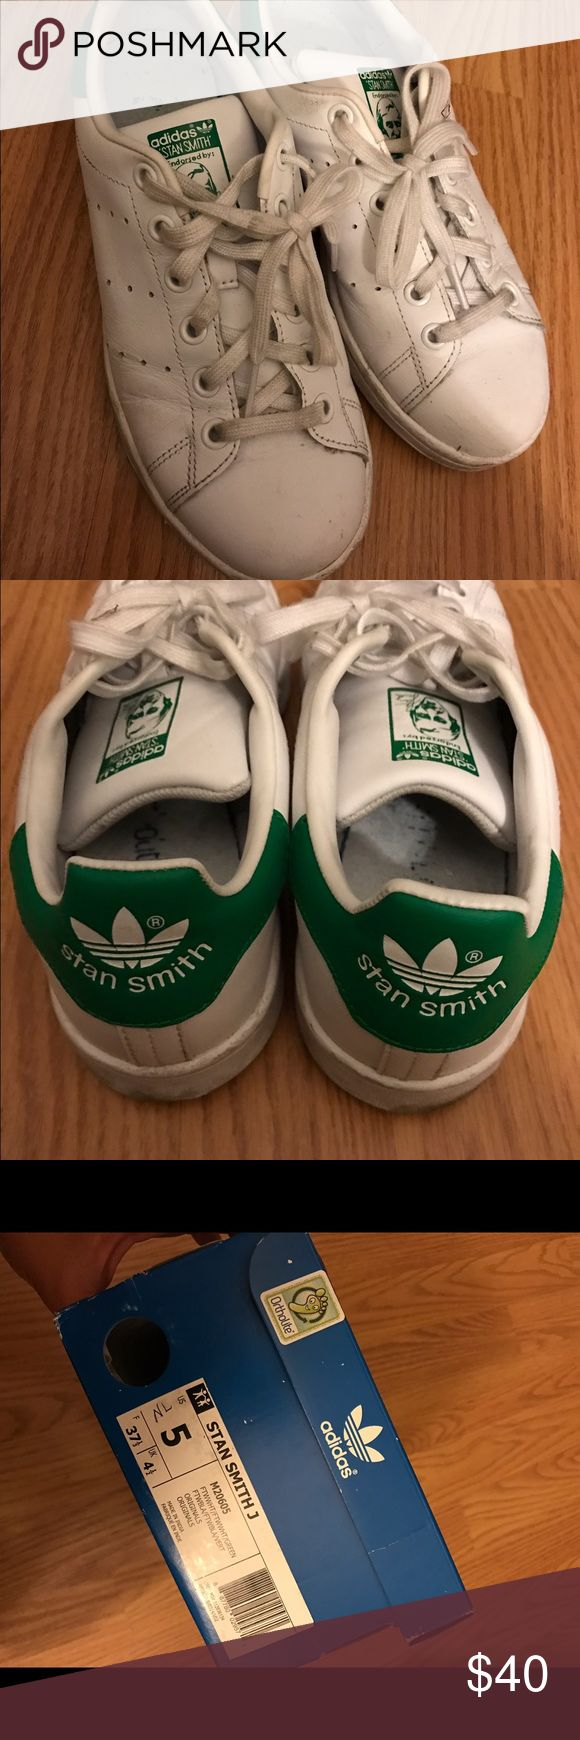 Adidas Stan Smith Original Adidas Stan Smith, worn but in good condition. Price is firm, no trades. Adidas Shoes Sneakers